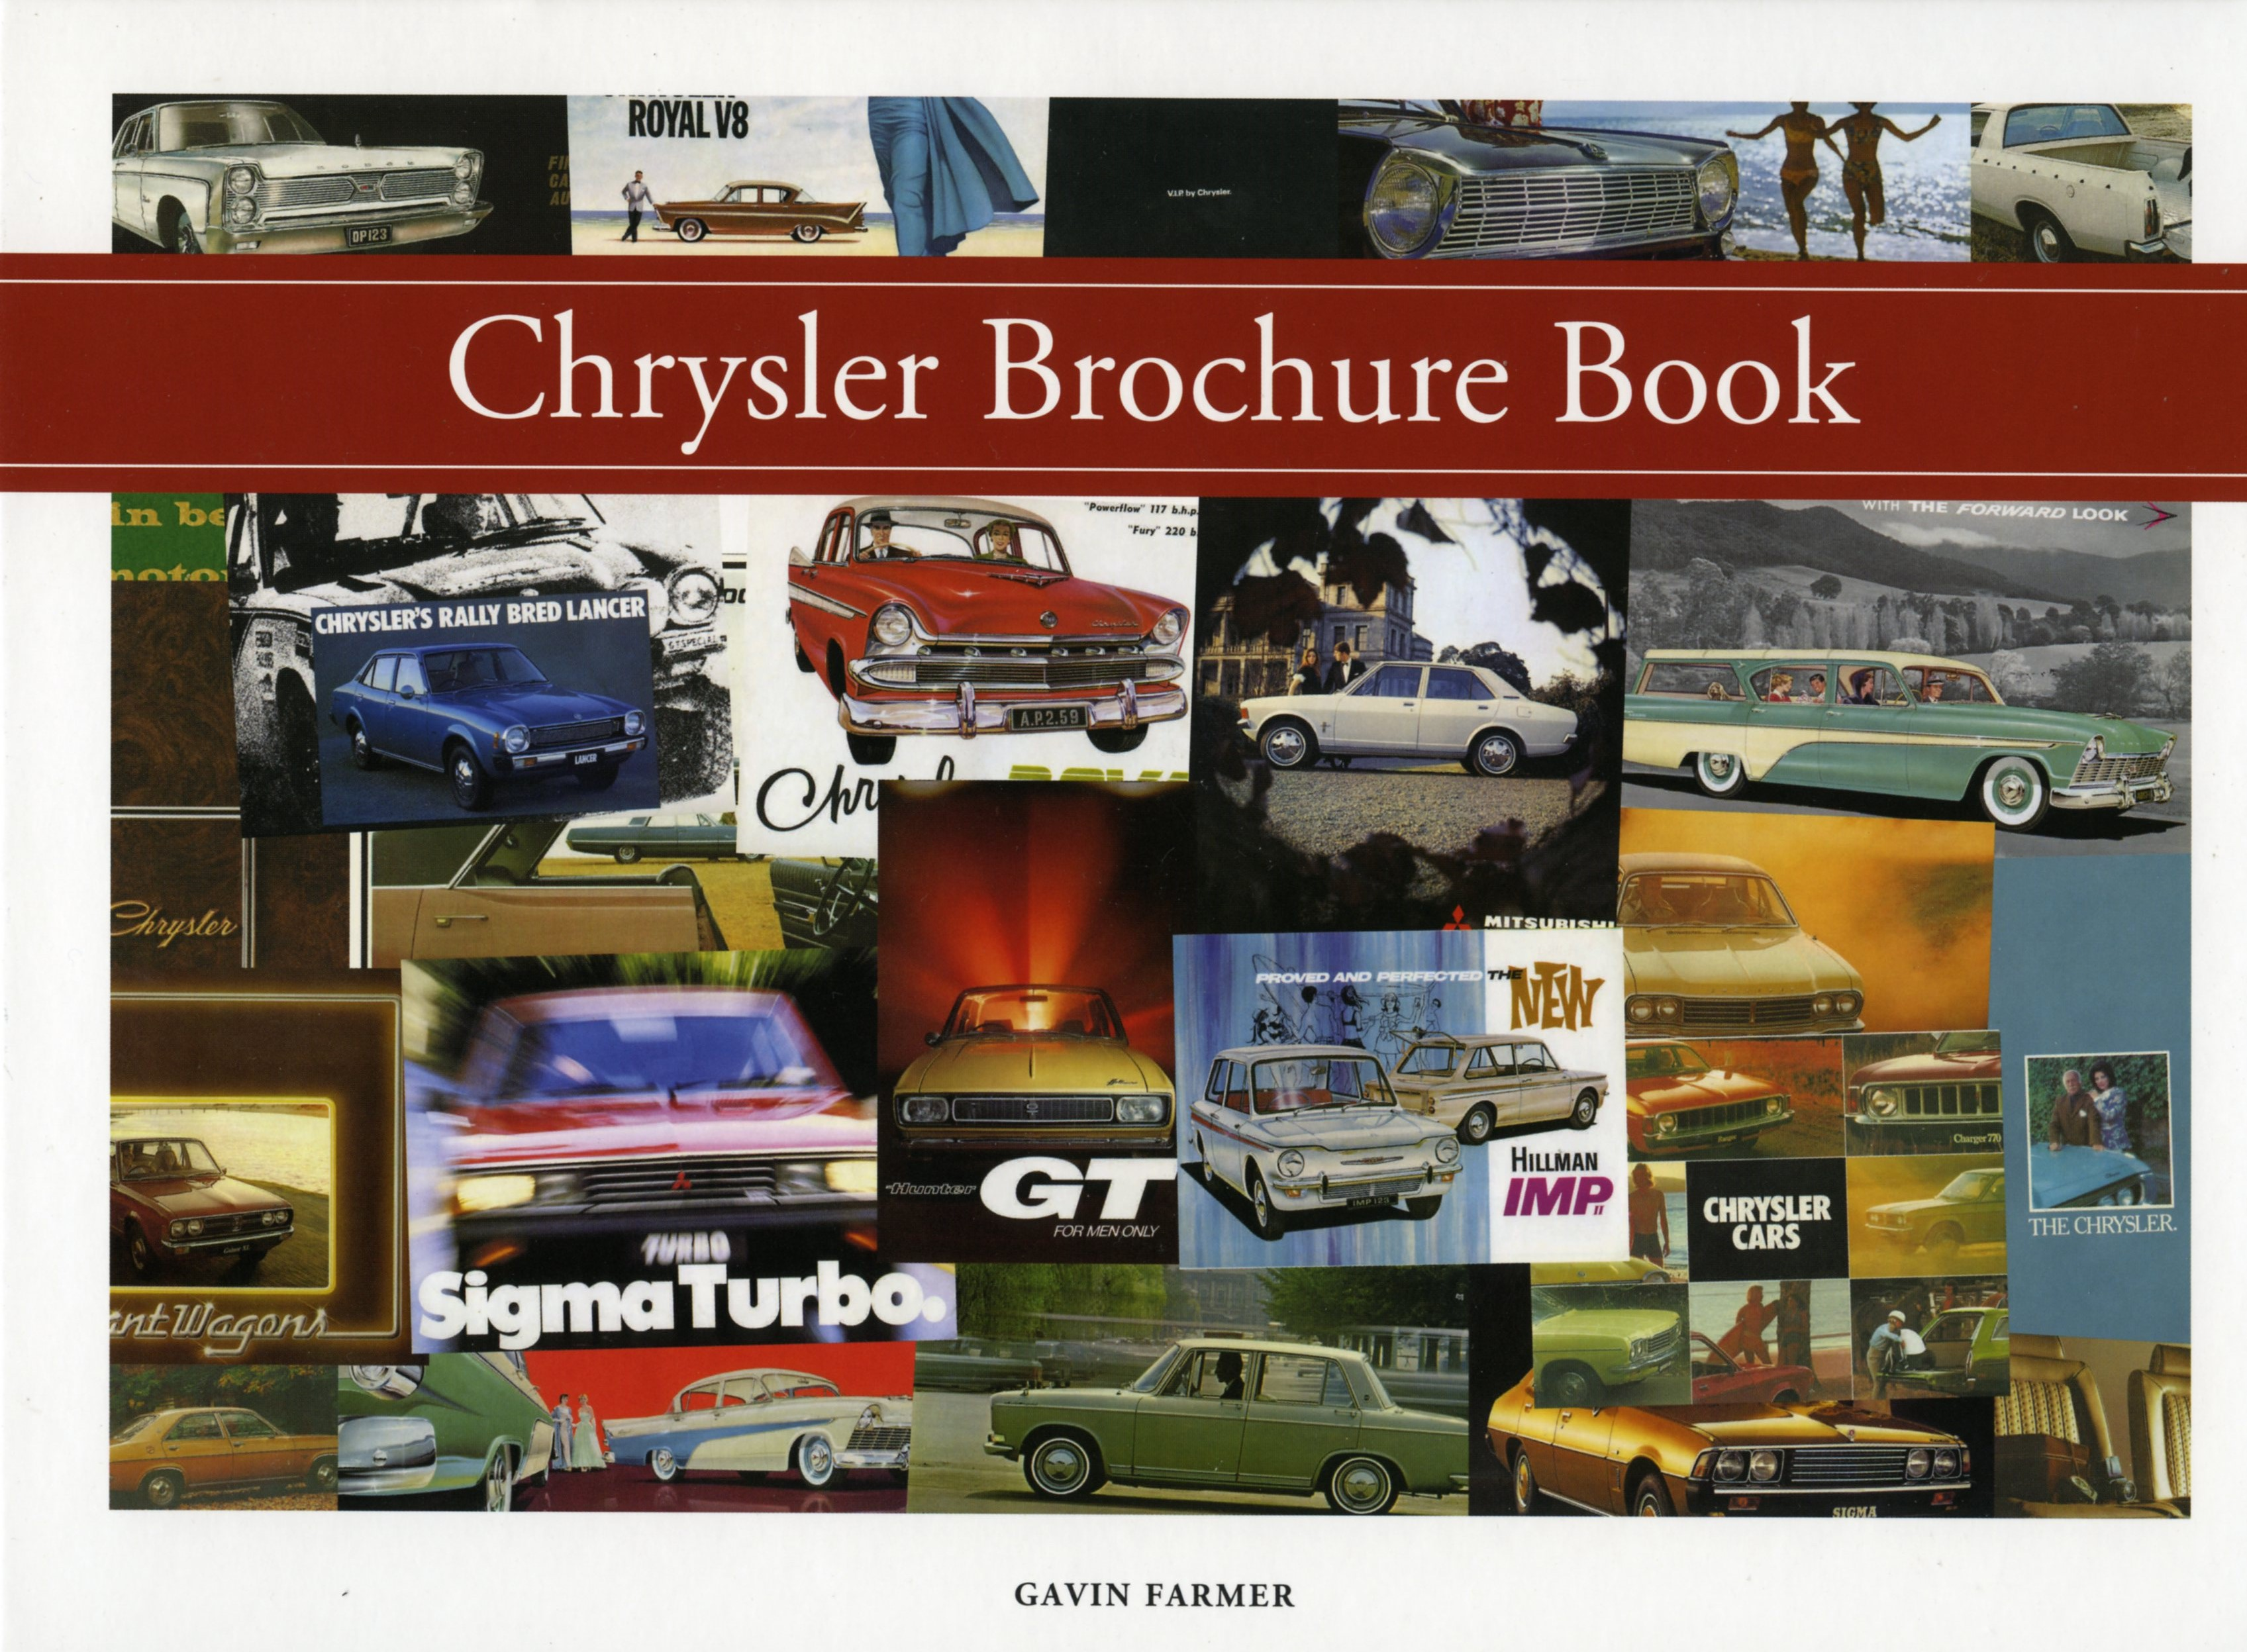 Chrysler Brochure Book by Gavin Farmer - Click Image to Close